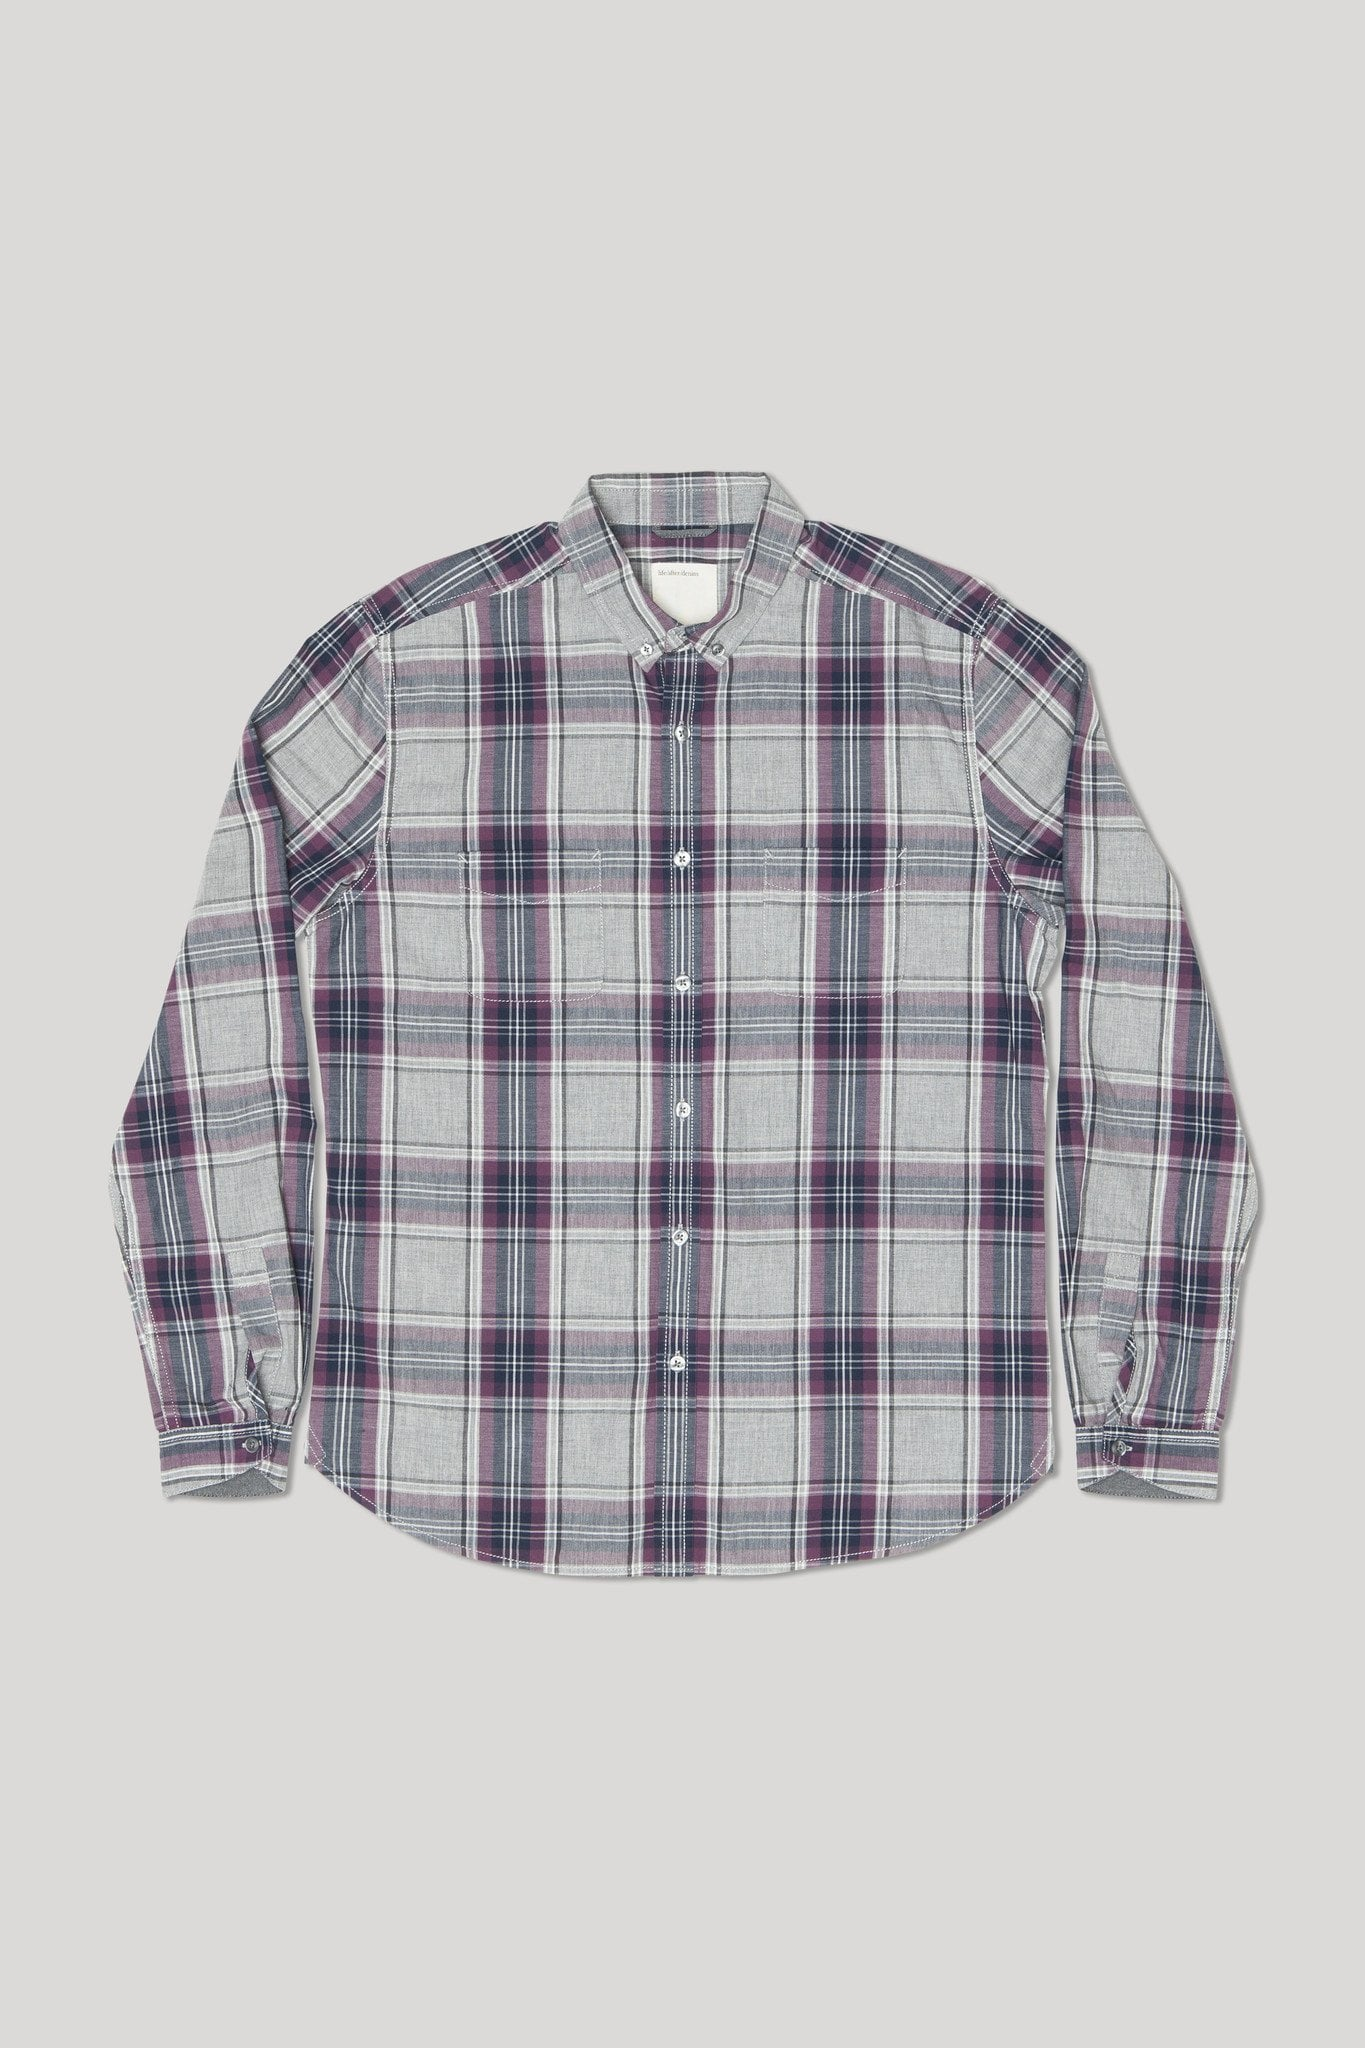 Heath Shirt - Heather Grey